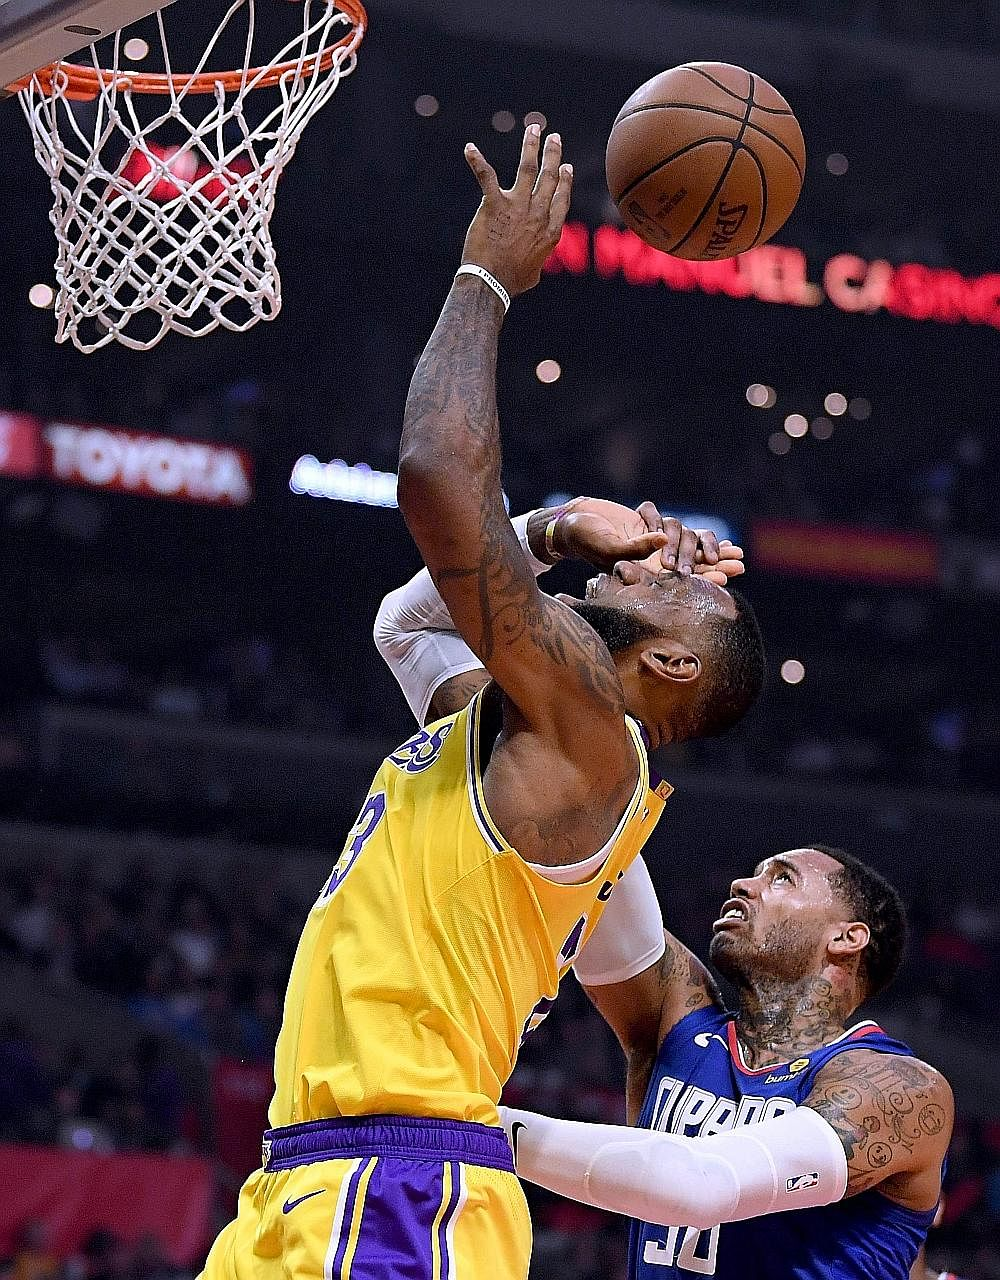 LeBron James being fouled by the Clippers' Mike Scott in the first half at Staples Centre on Thursday. The Los Angeles Lakers forward made a triumphant return after 36 days on the sidelines, leading his team to a 123-120 overtime win over the Clipper